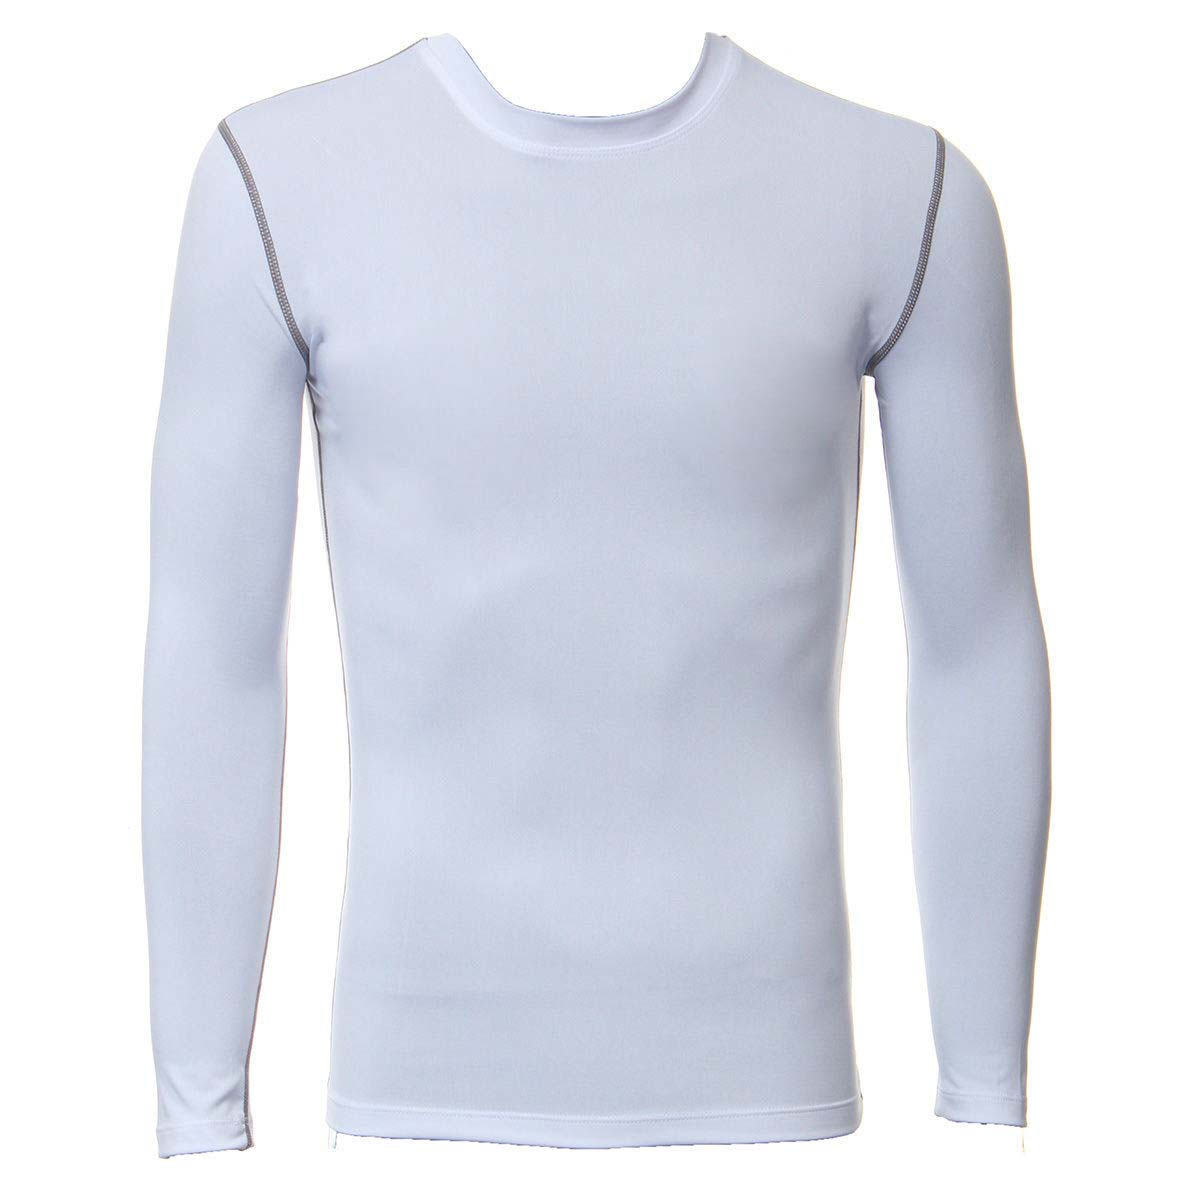 0be99cbd76e Men Boys Tops Tshirts Compression Baselayers Thermal Base Layer Under tShirt  For Male Men Clothes Sports Yuga White Black-in T-Shirts from Men s Clothing  on ...